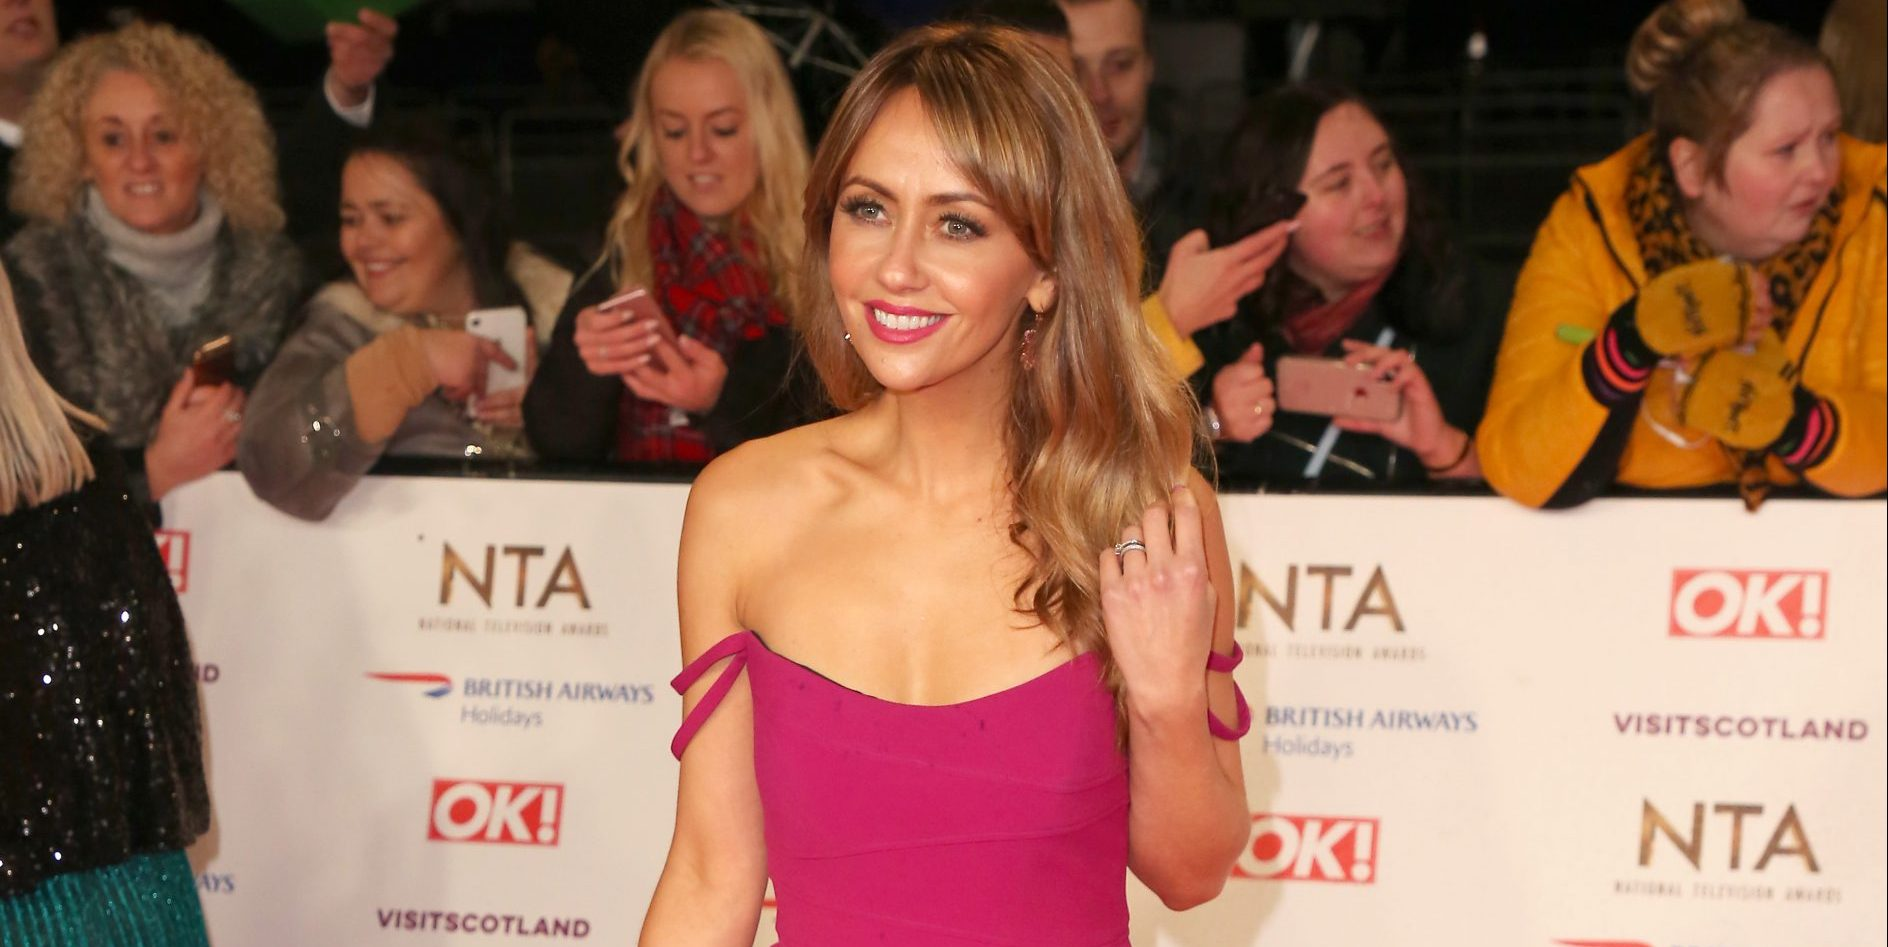 Coronation Street's Samia Longchambon posts stunning picture from Switzerland with daughter Freya